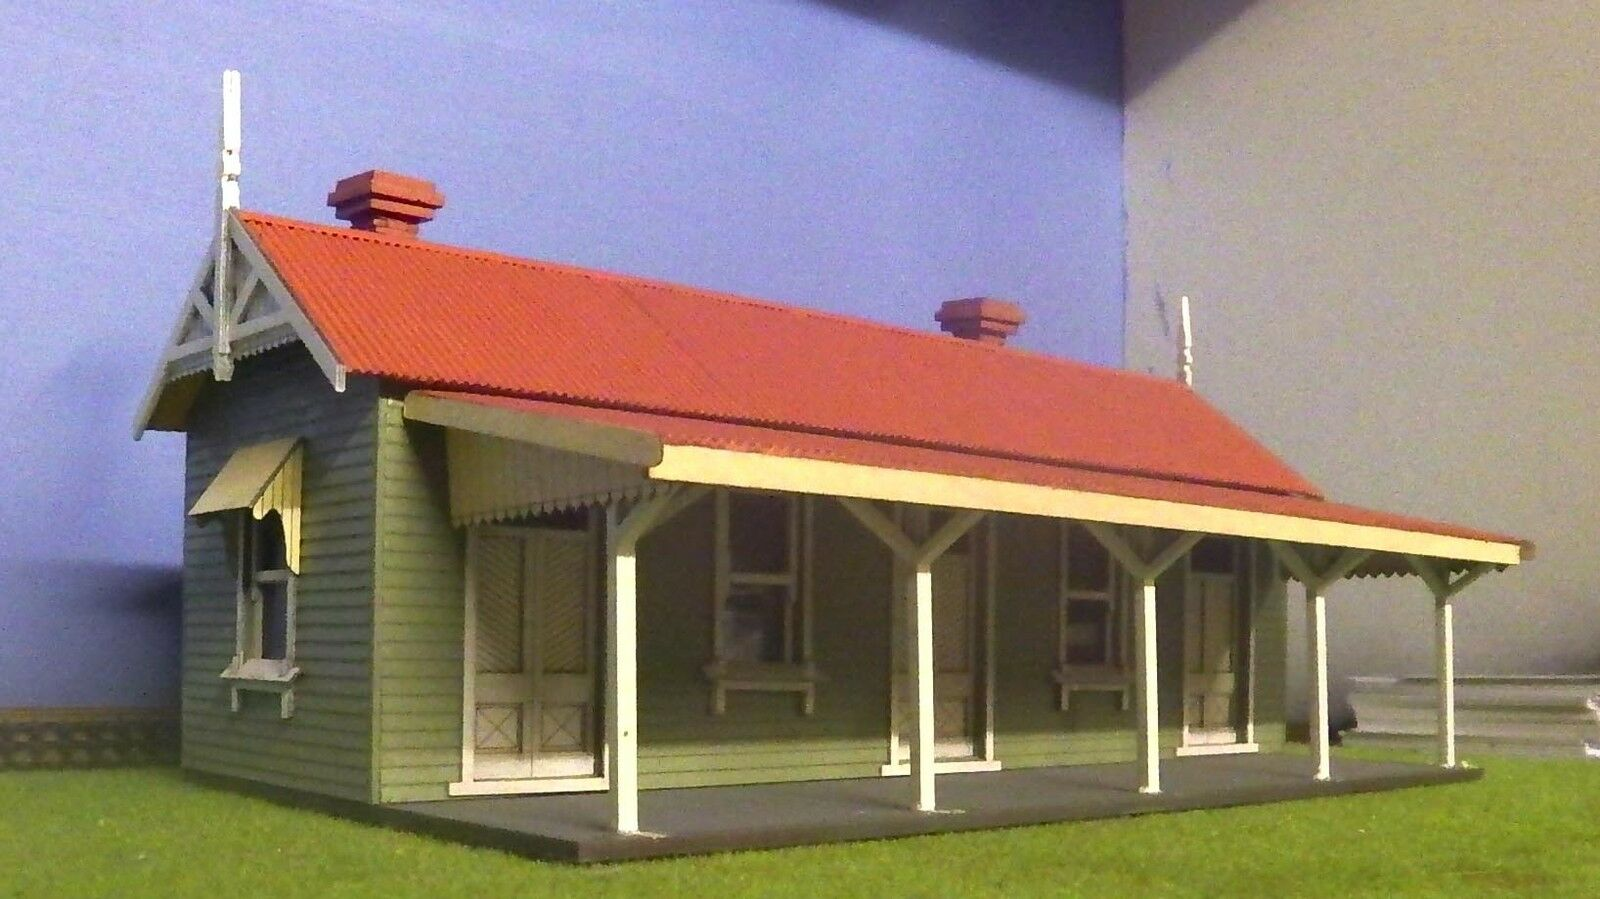 O scale scale scale building VR station kit Bullarto 4f724f